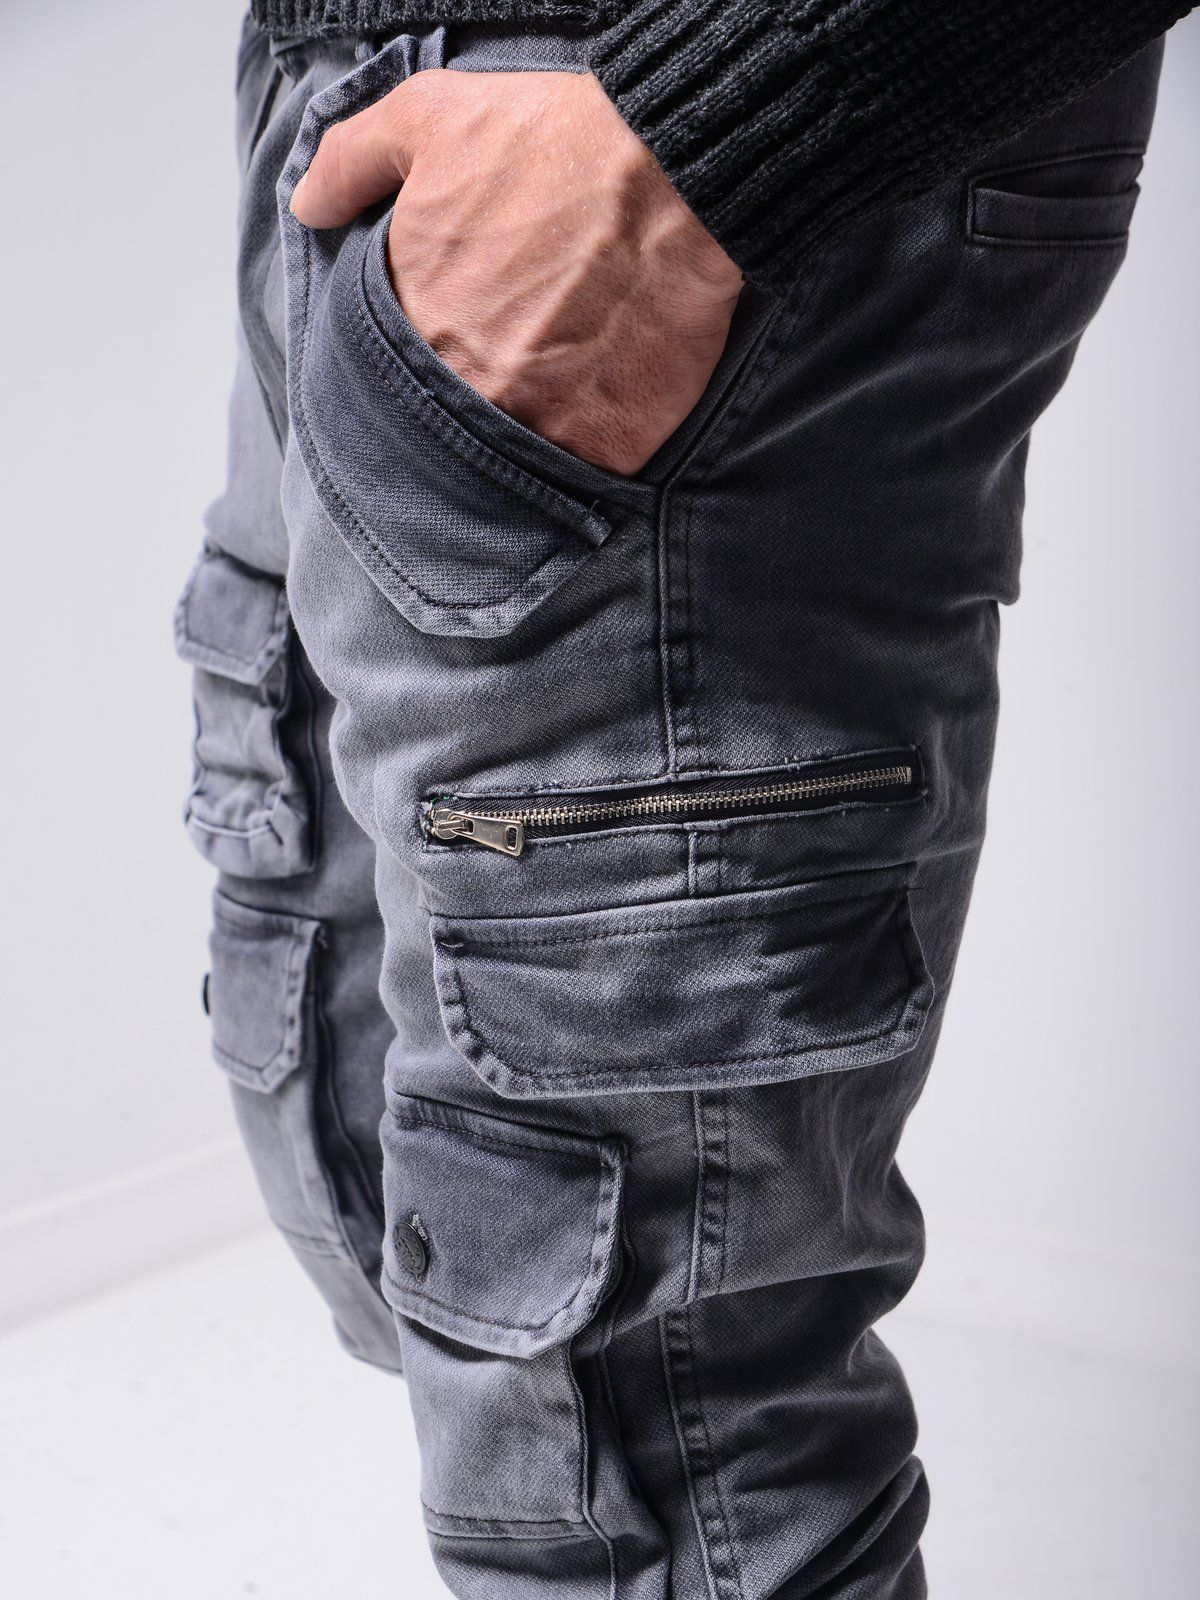 Super Cargo Jeans Washed Gray 4601 Fash Stop Mens Street Style Streetwear Jeans Street Style